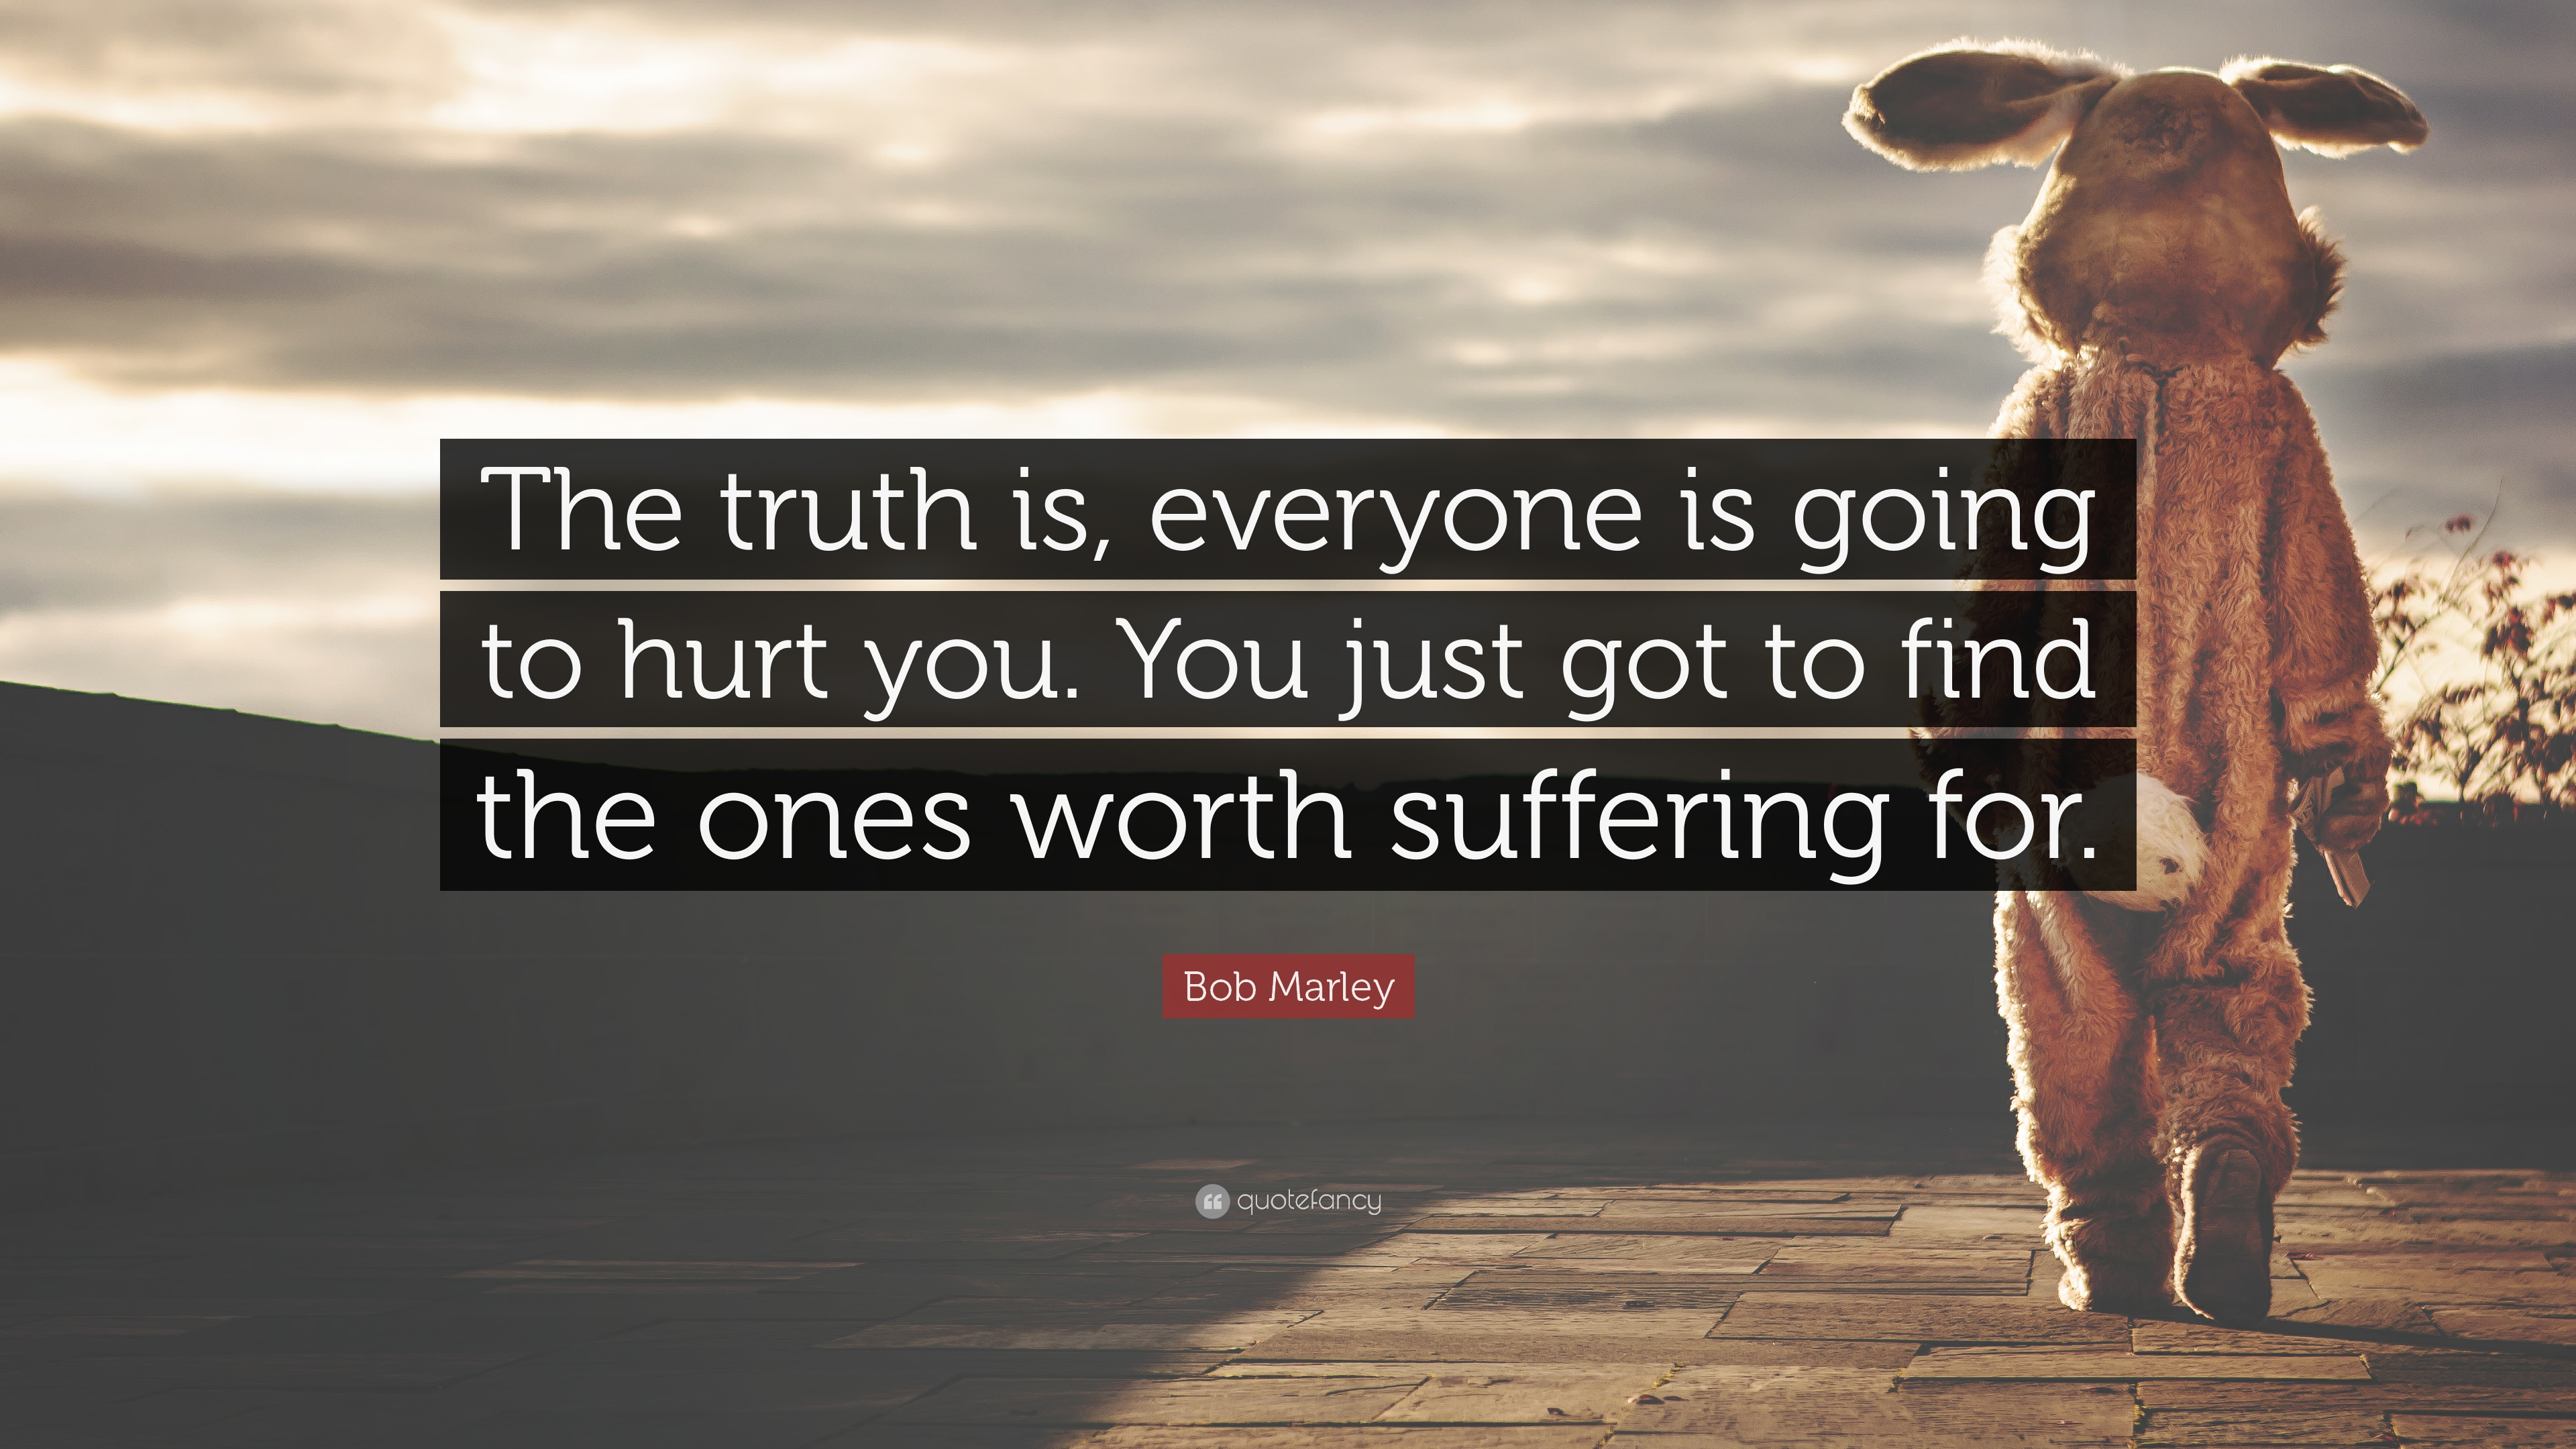 Relationship Quotes  57 wallpapers    Quotefancy Relationship Quotes     The truth is  everyone is going to hurt you  You